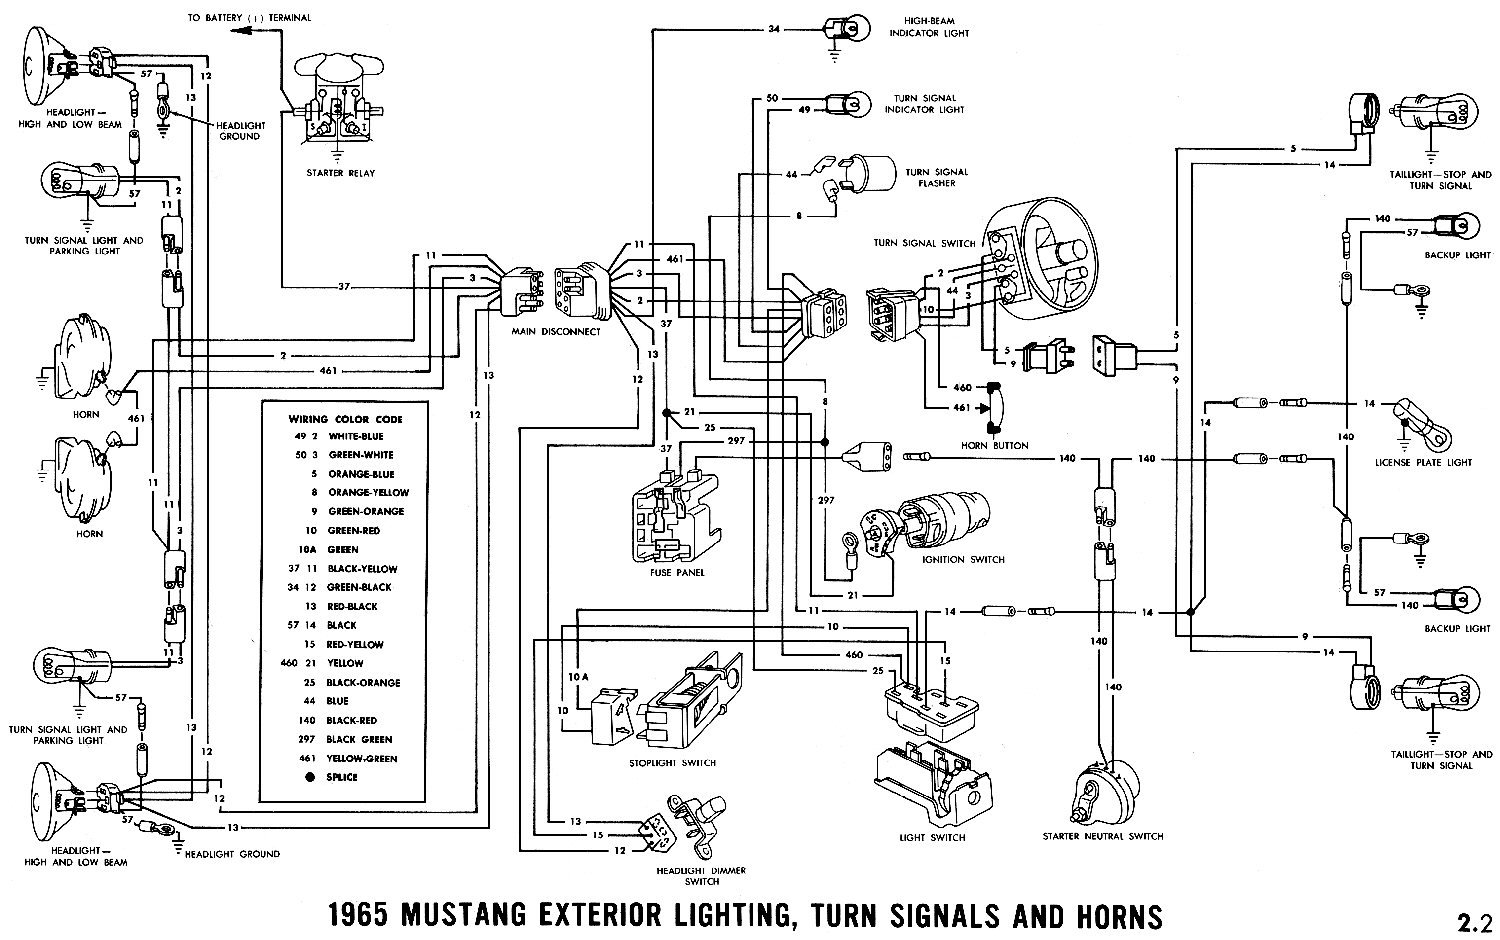 64705d1237858195-fuse-block-1965-mustang-coupe-1965e Radio Free Schematics Diagrams on am tube radio, samsung lcd tv, computer circuit board, digital multimeter, hvac system, sony tv,